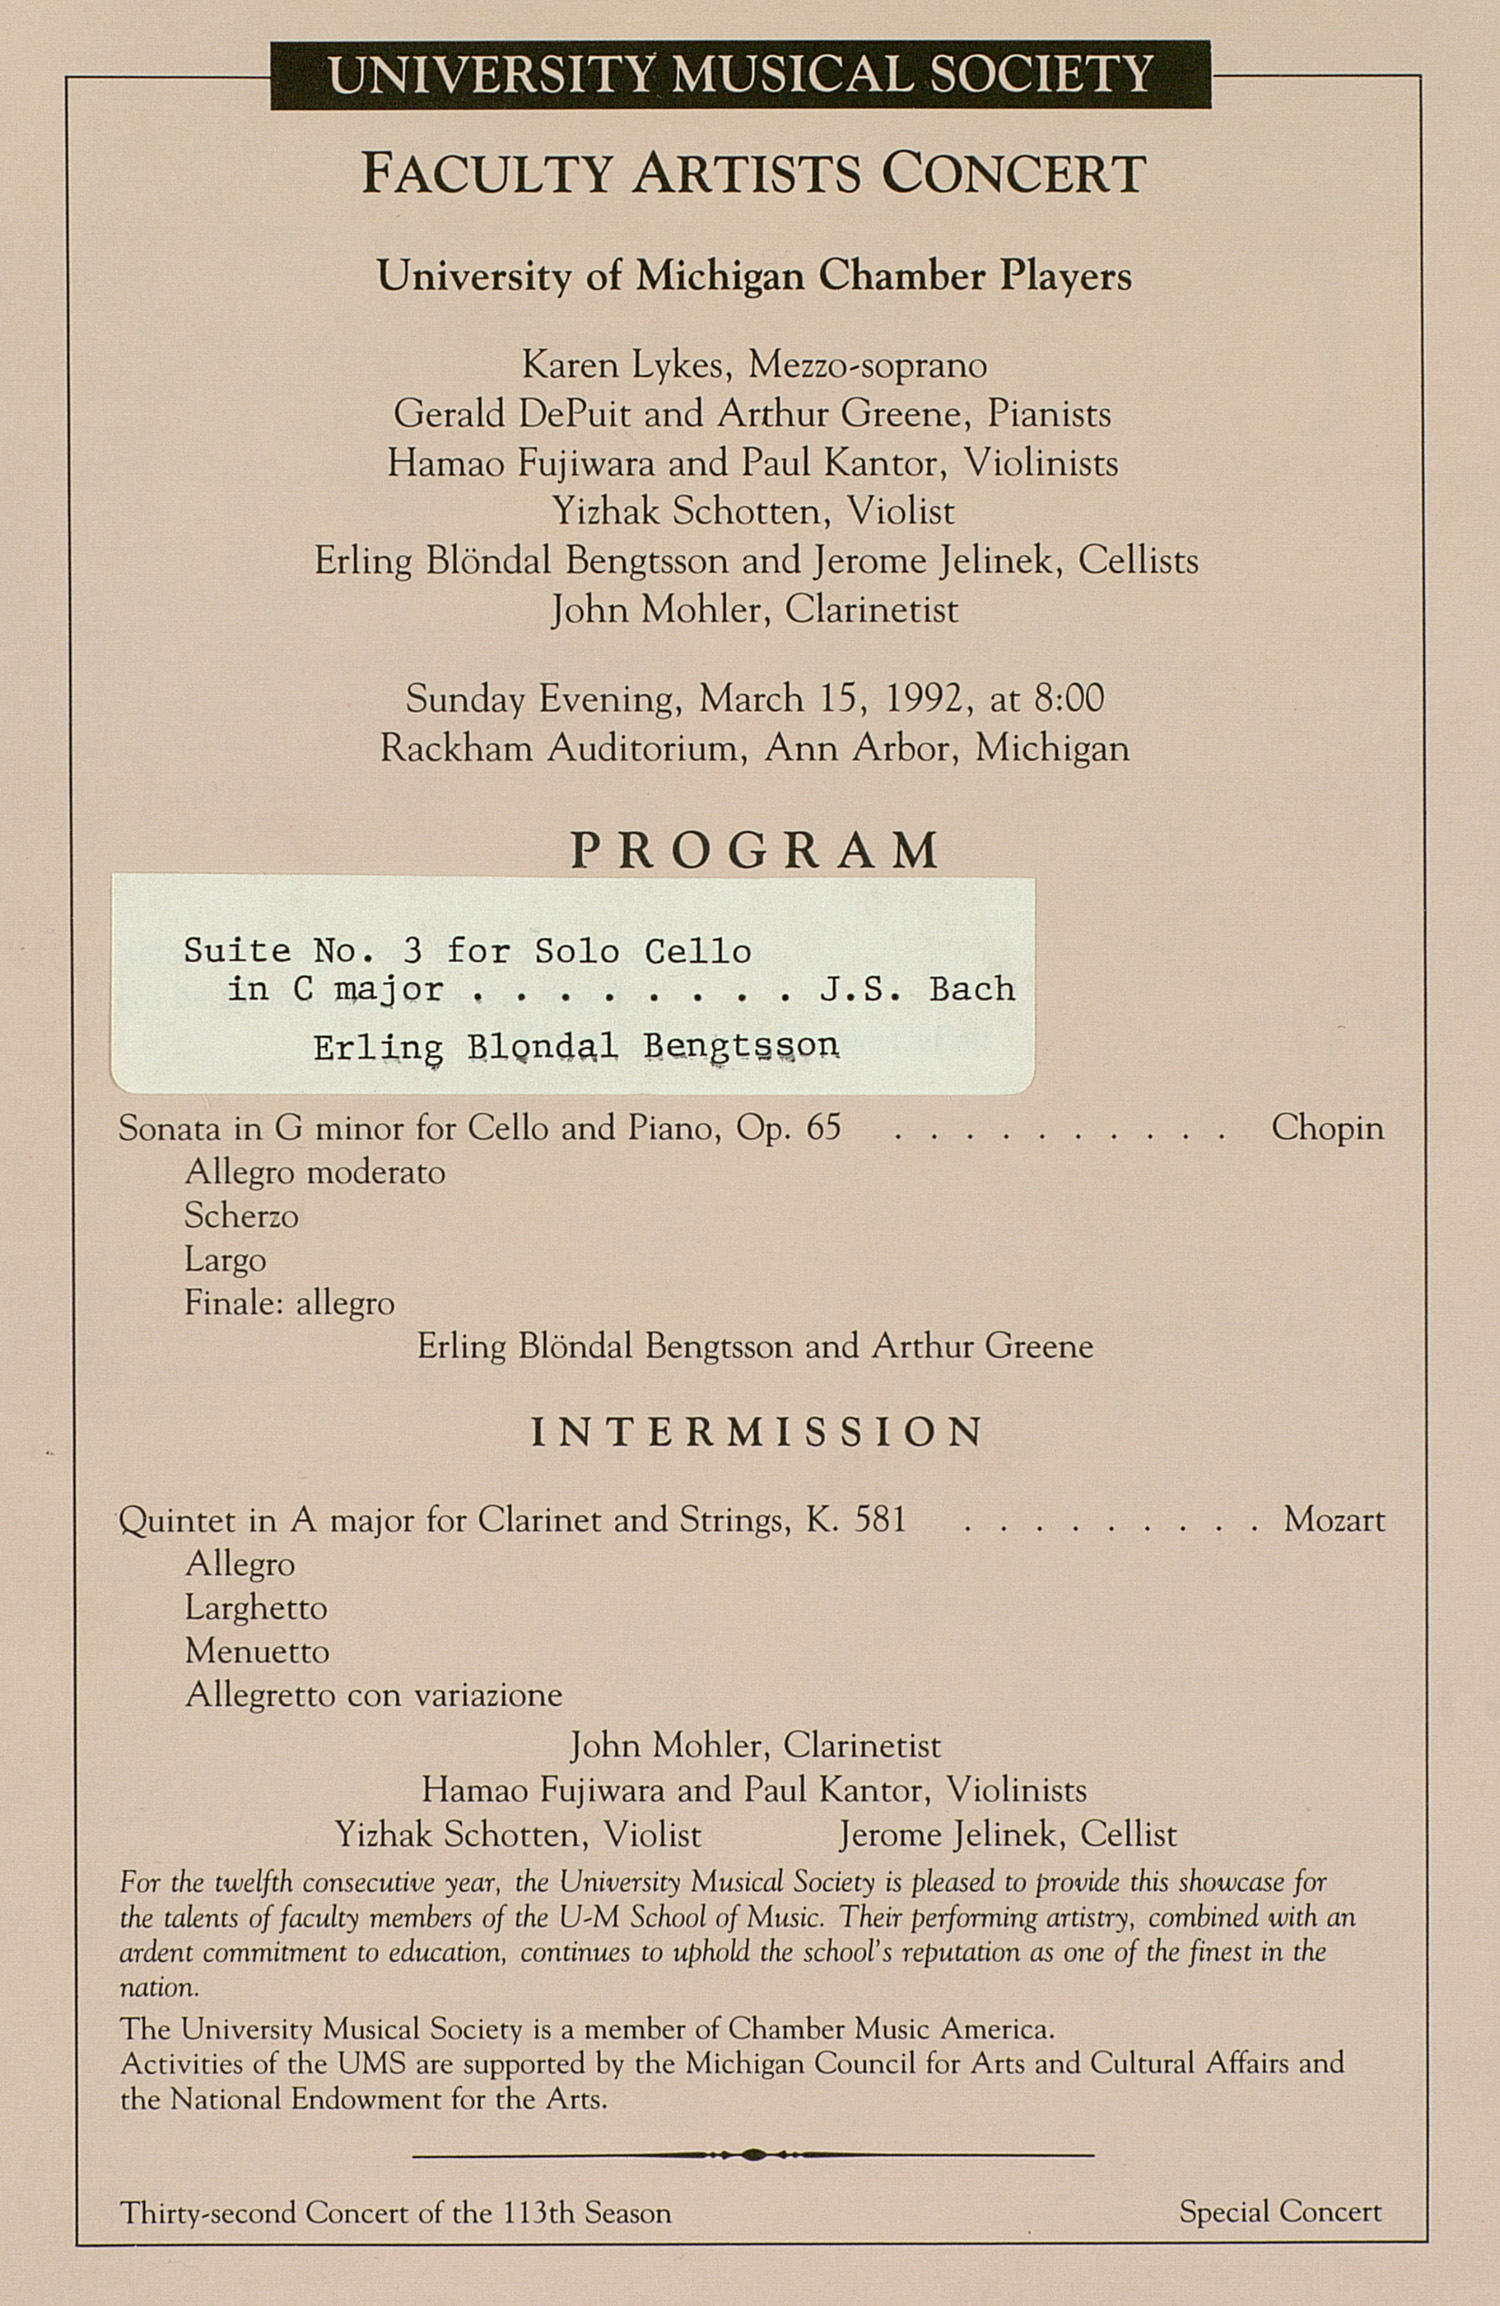 UMS Concert Program, March 15, 1992: Faculty Artists Concert --  image